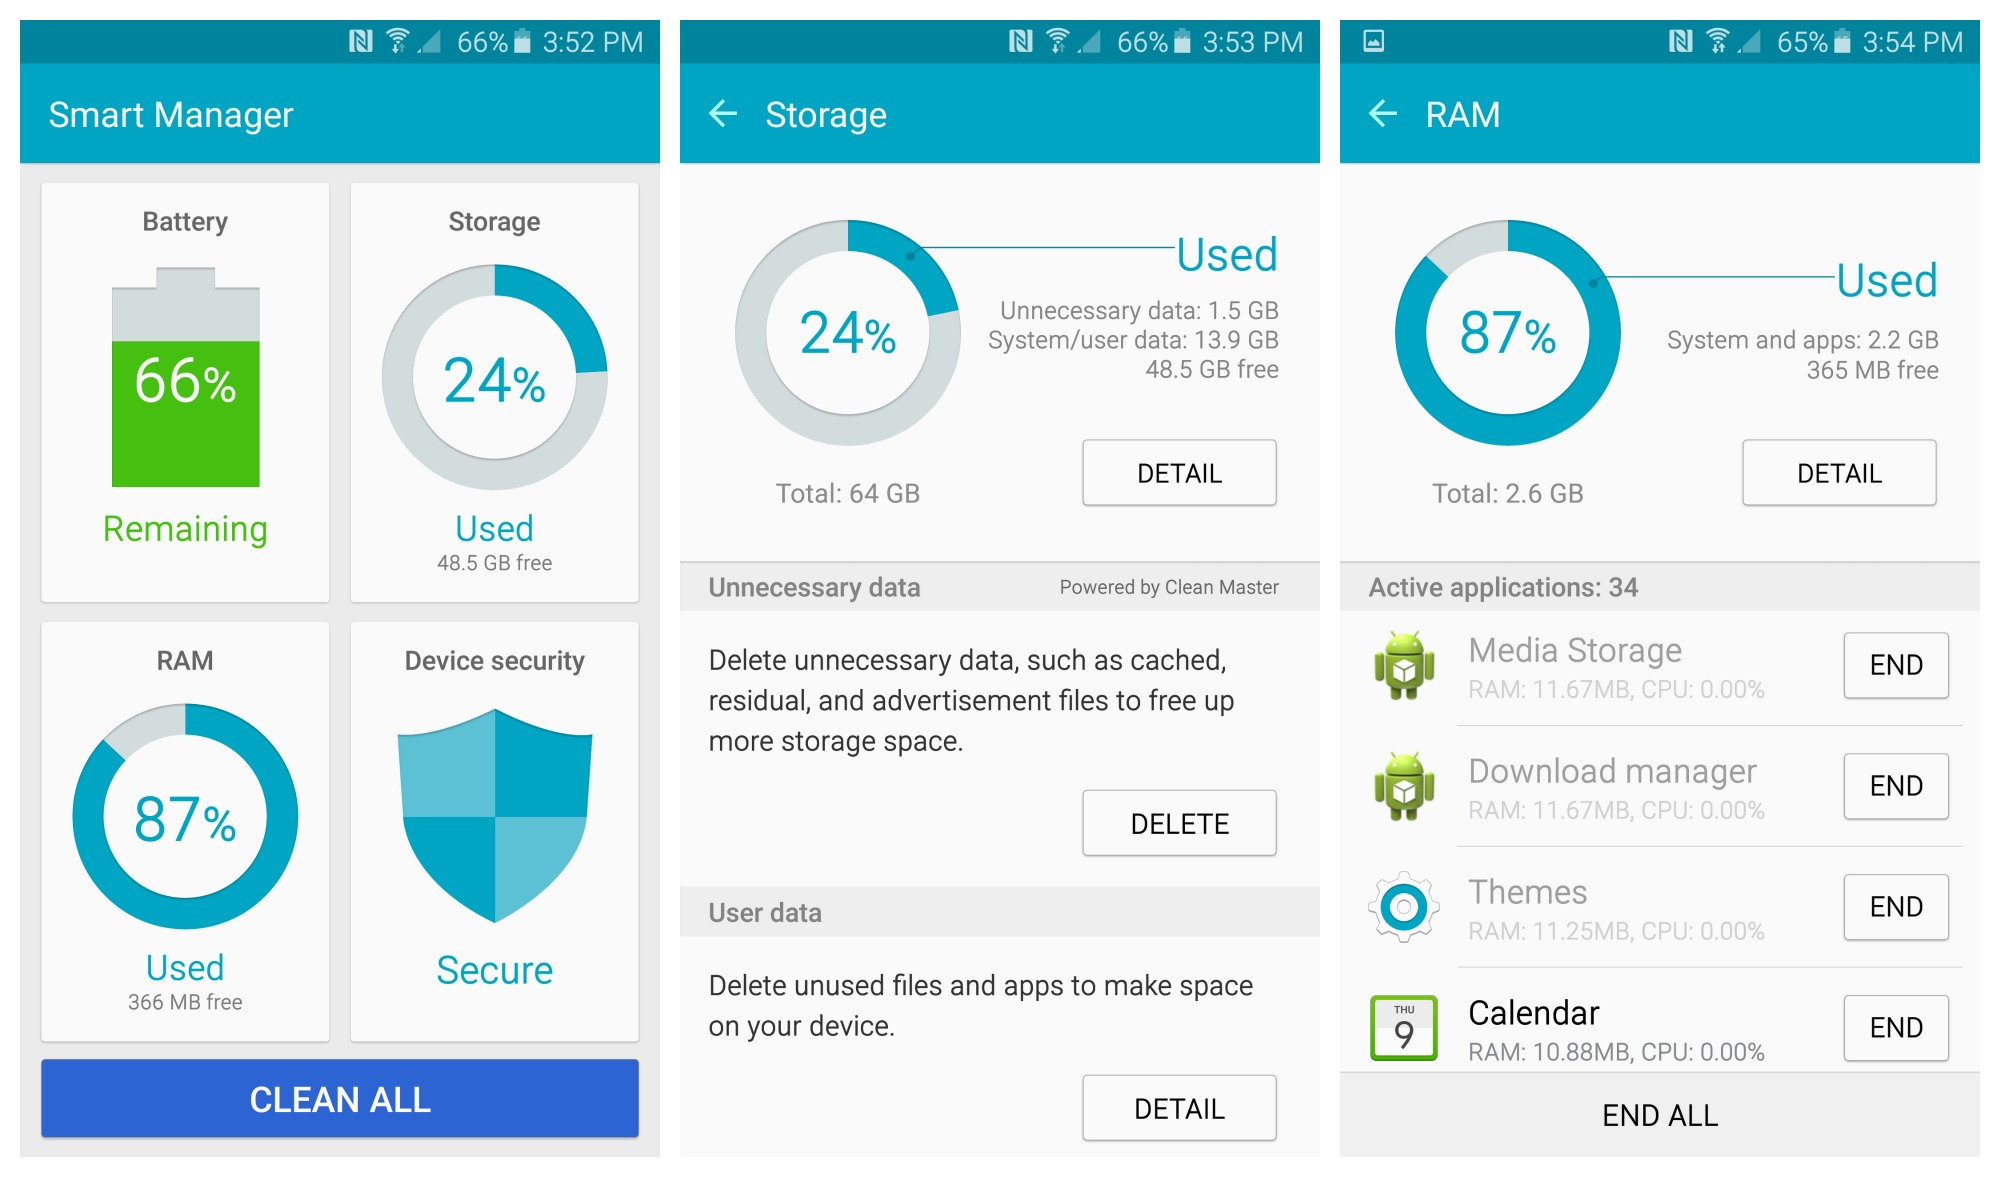 Best tips and tircks to use Samsung Galaxy S6 Smart Manager app